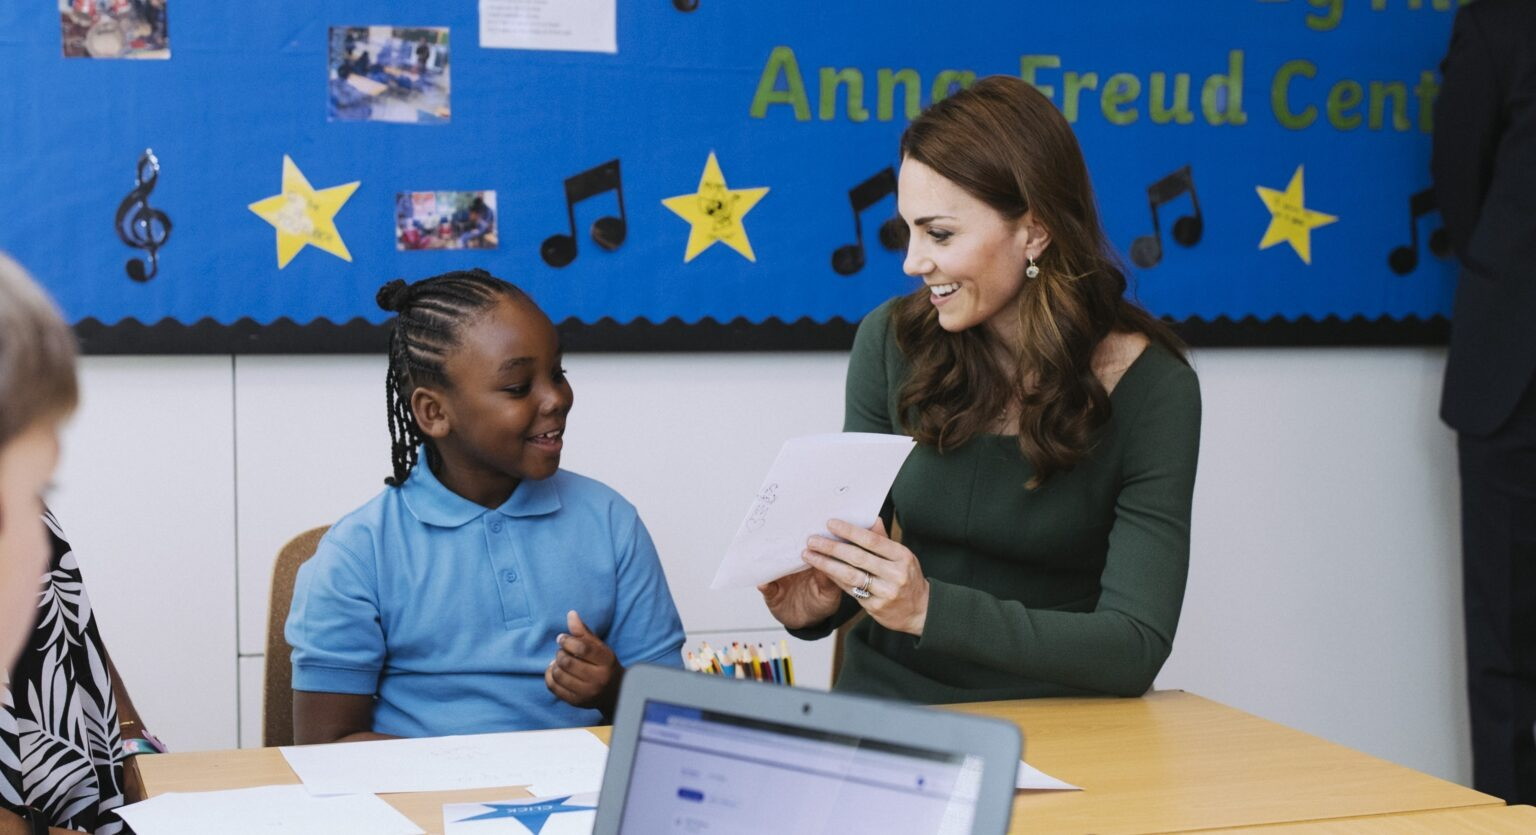 The Duchess of Cambridge, Kate Middleton, became a Patron in 2016 of The Anna Freud National Centre for Children and Families,the former Hampstead Child-Therapy Clinic.